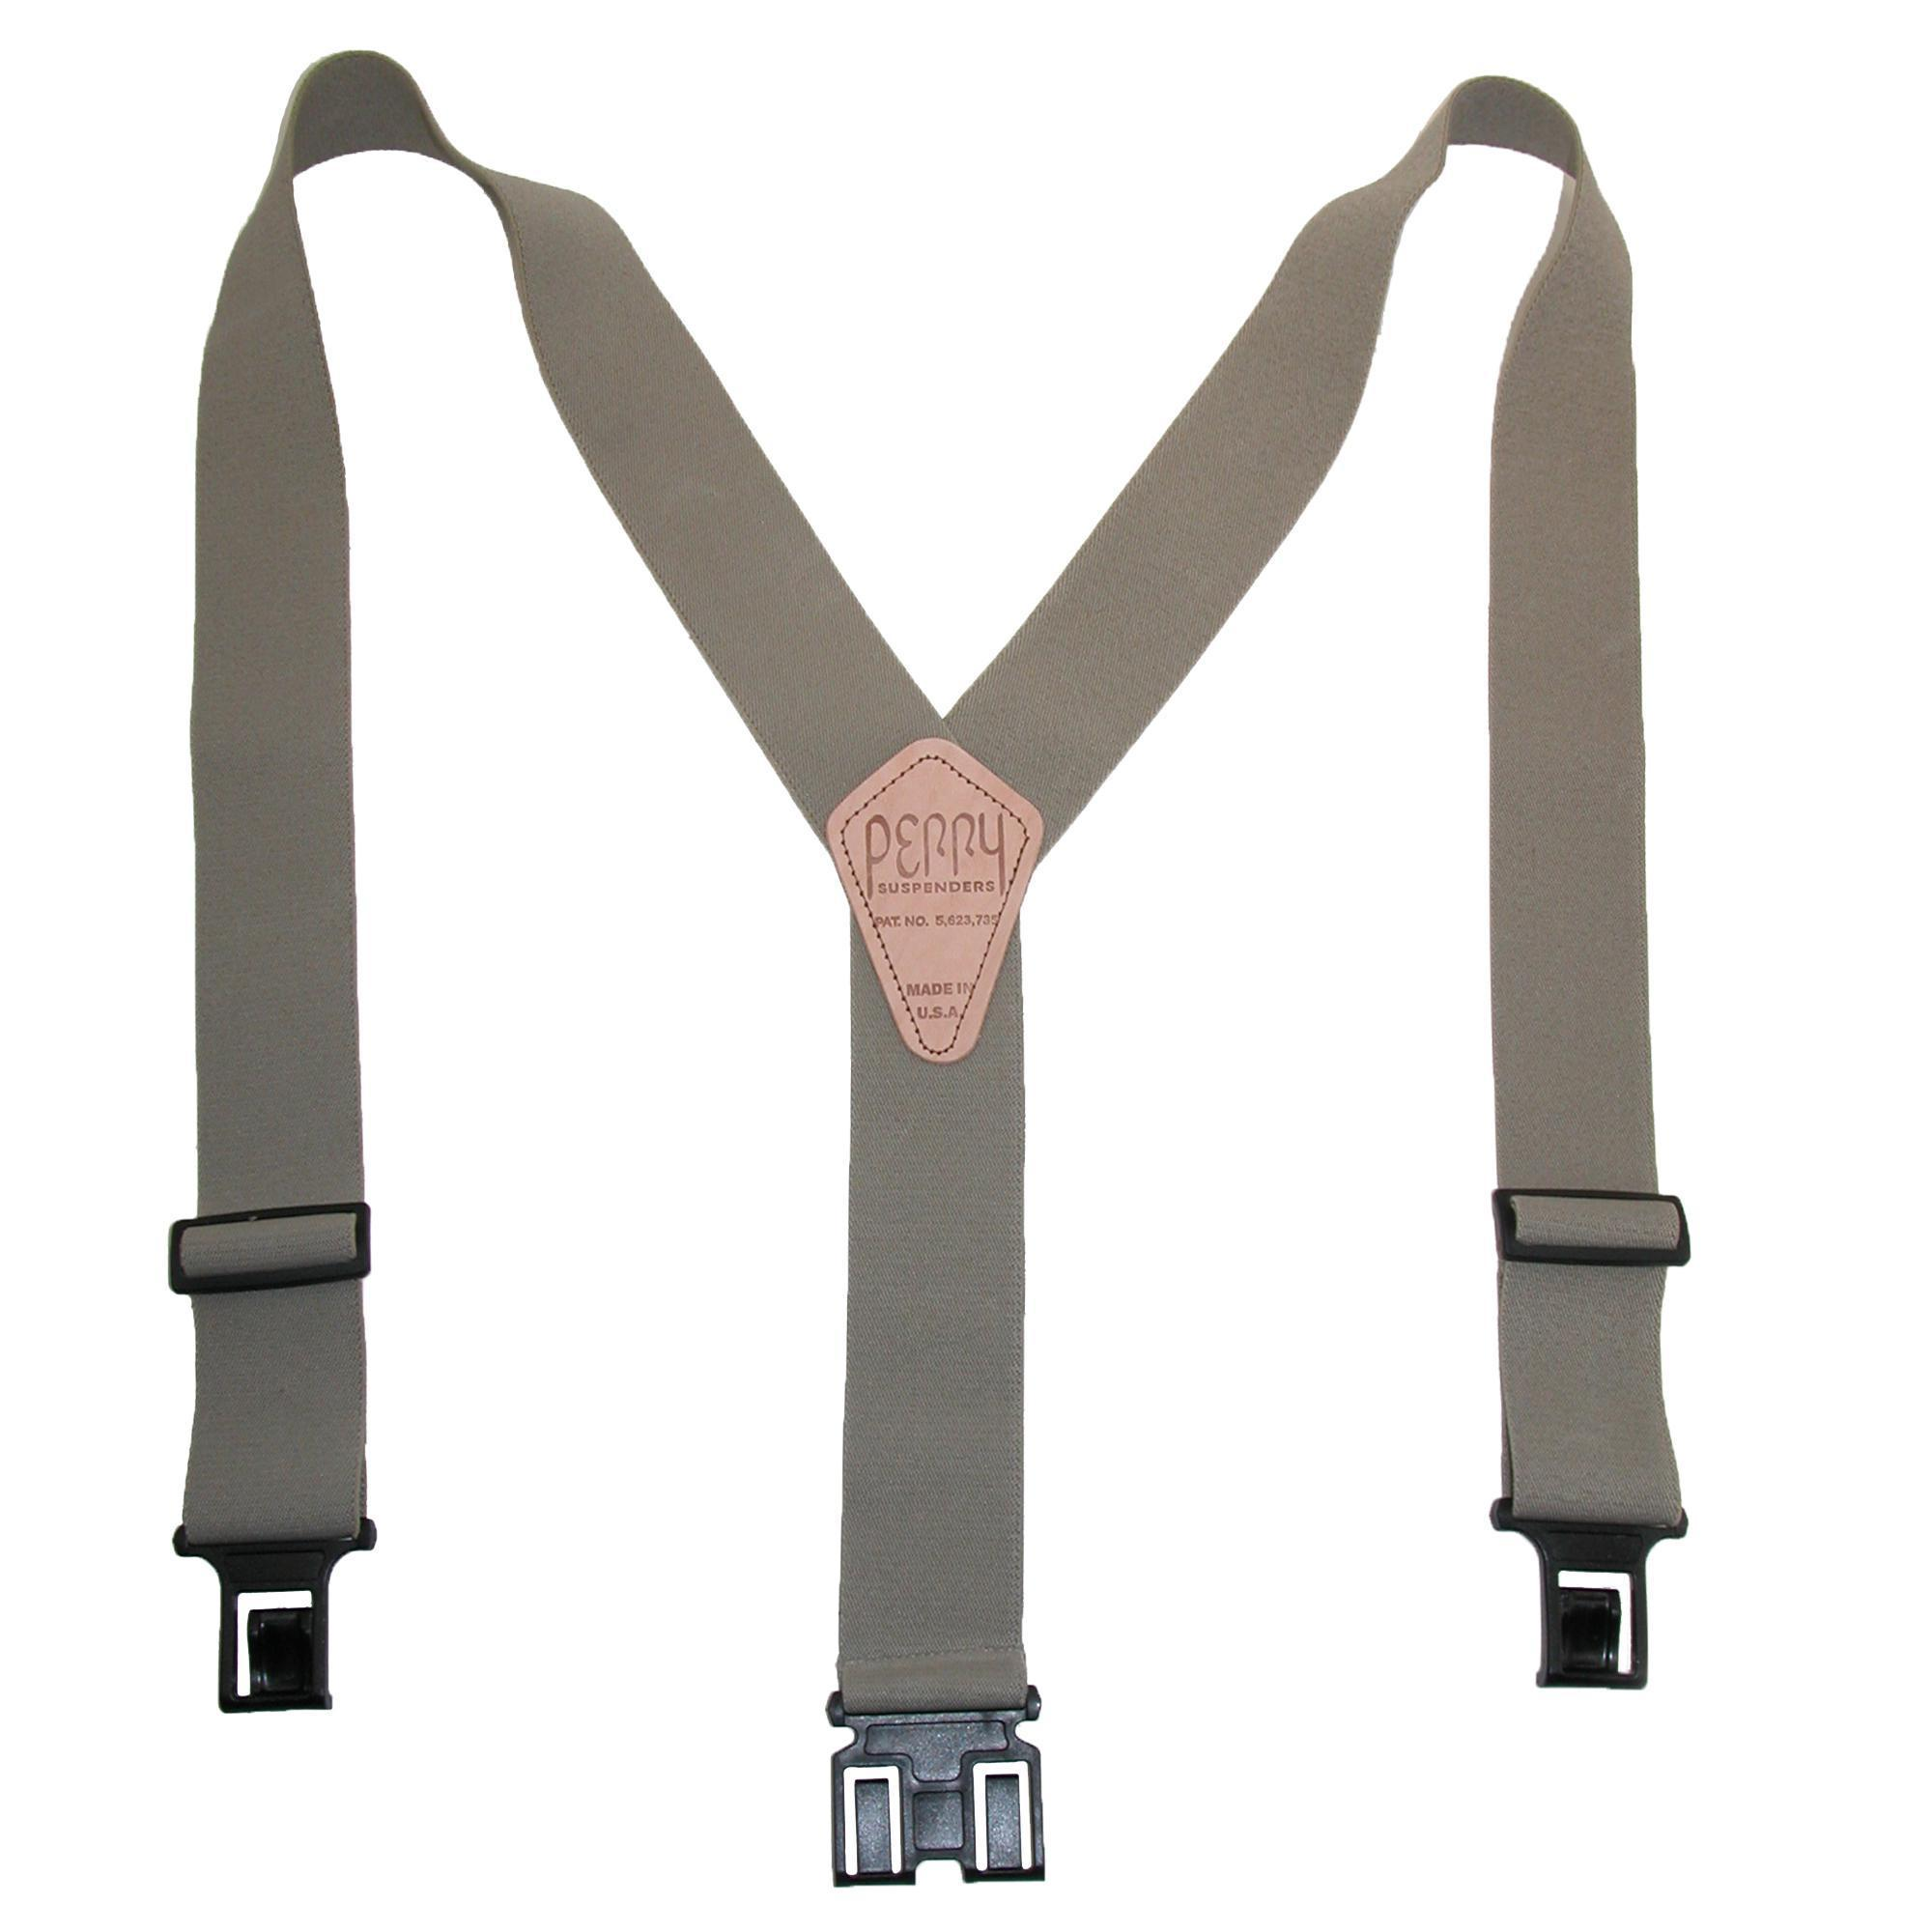 Perry_Suspenders_Men's_Elastic_Hook_End_Suspenders_(Tall_Available)_-